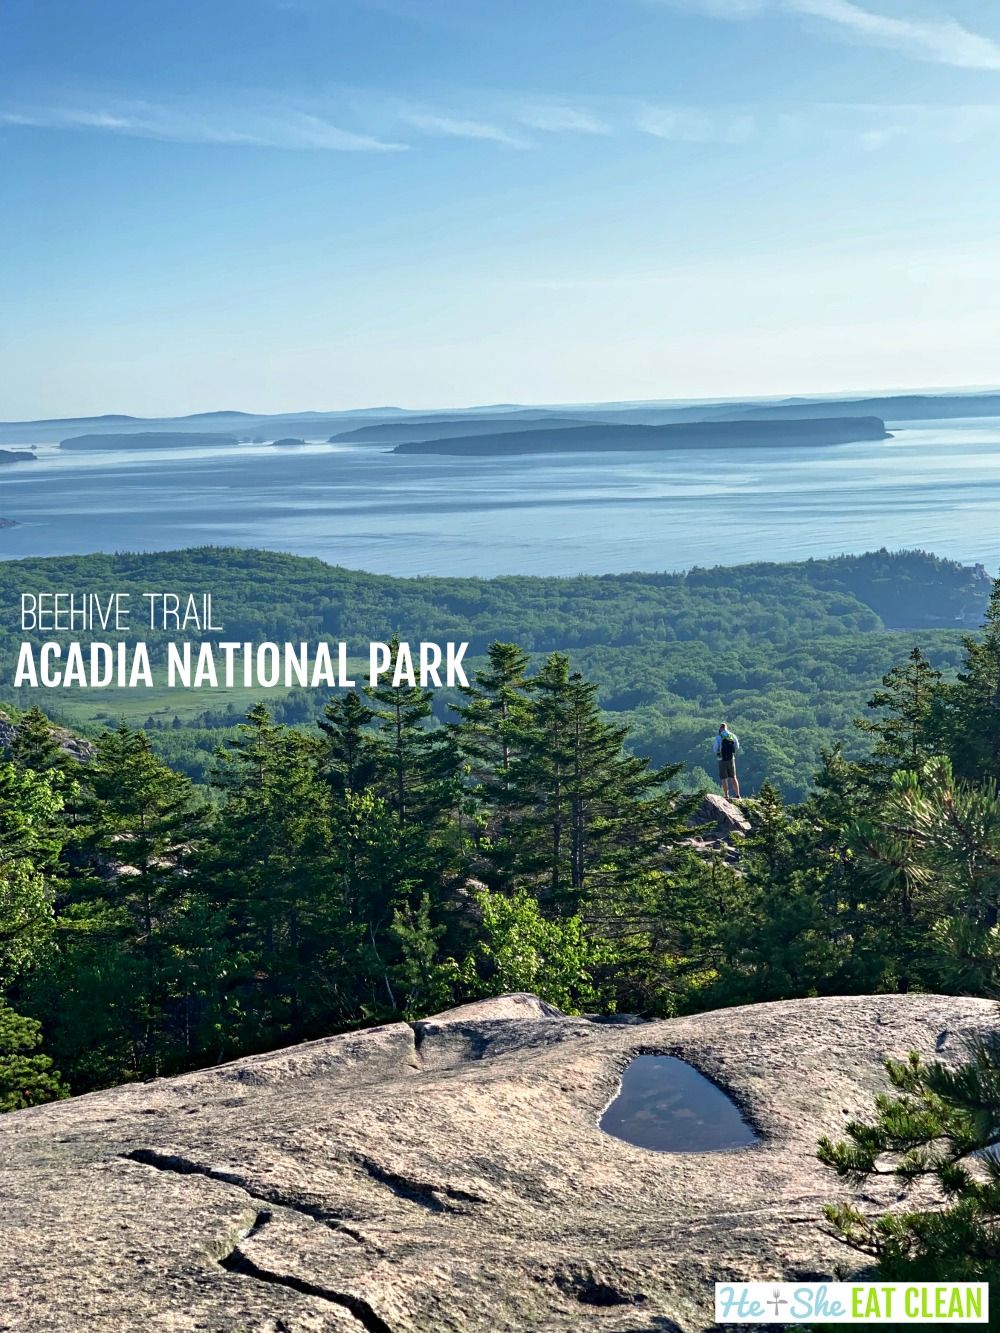 landscape photo from the summit of Beehive Trail in Acadia National Park, granite rock with ocean and trees in the background